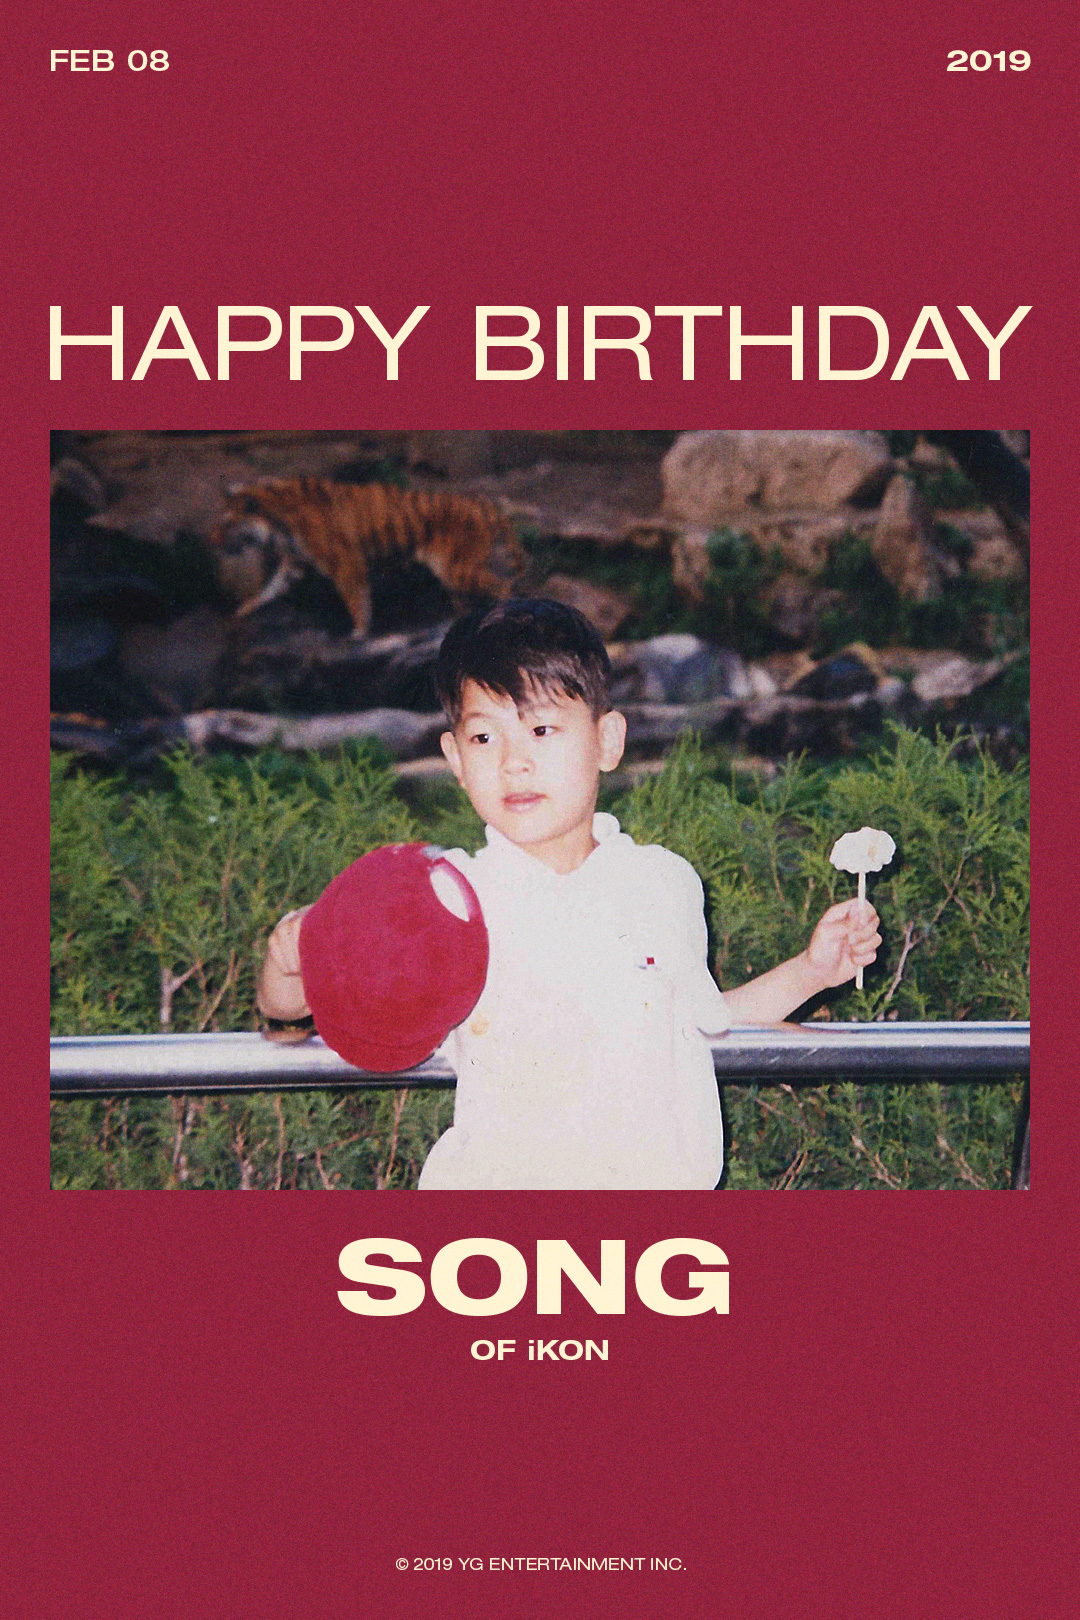 HBD-SONG-1